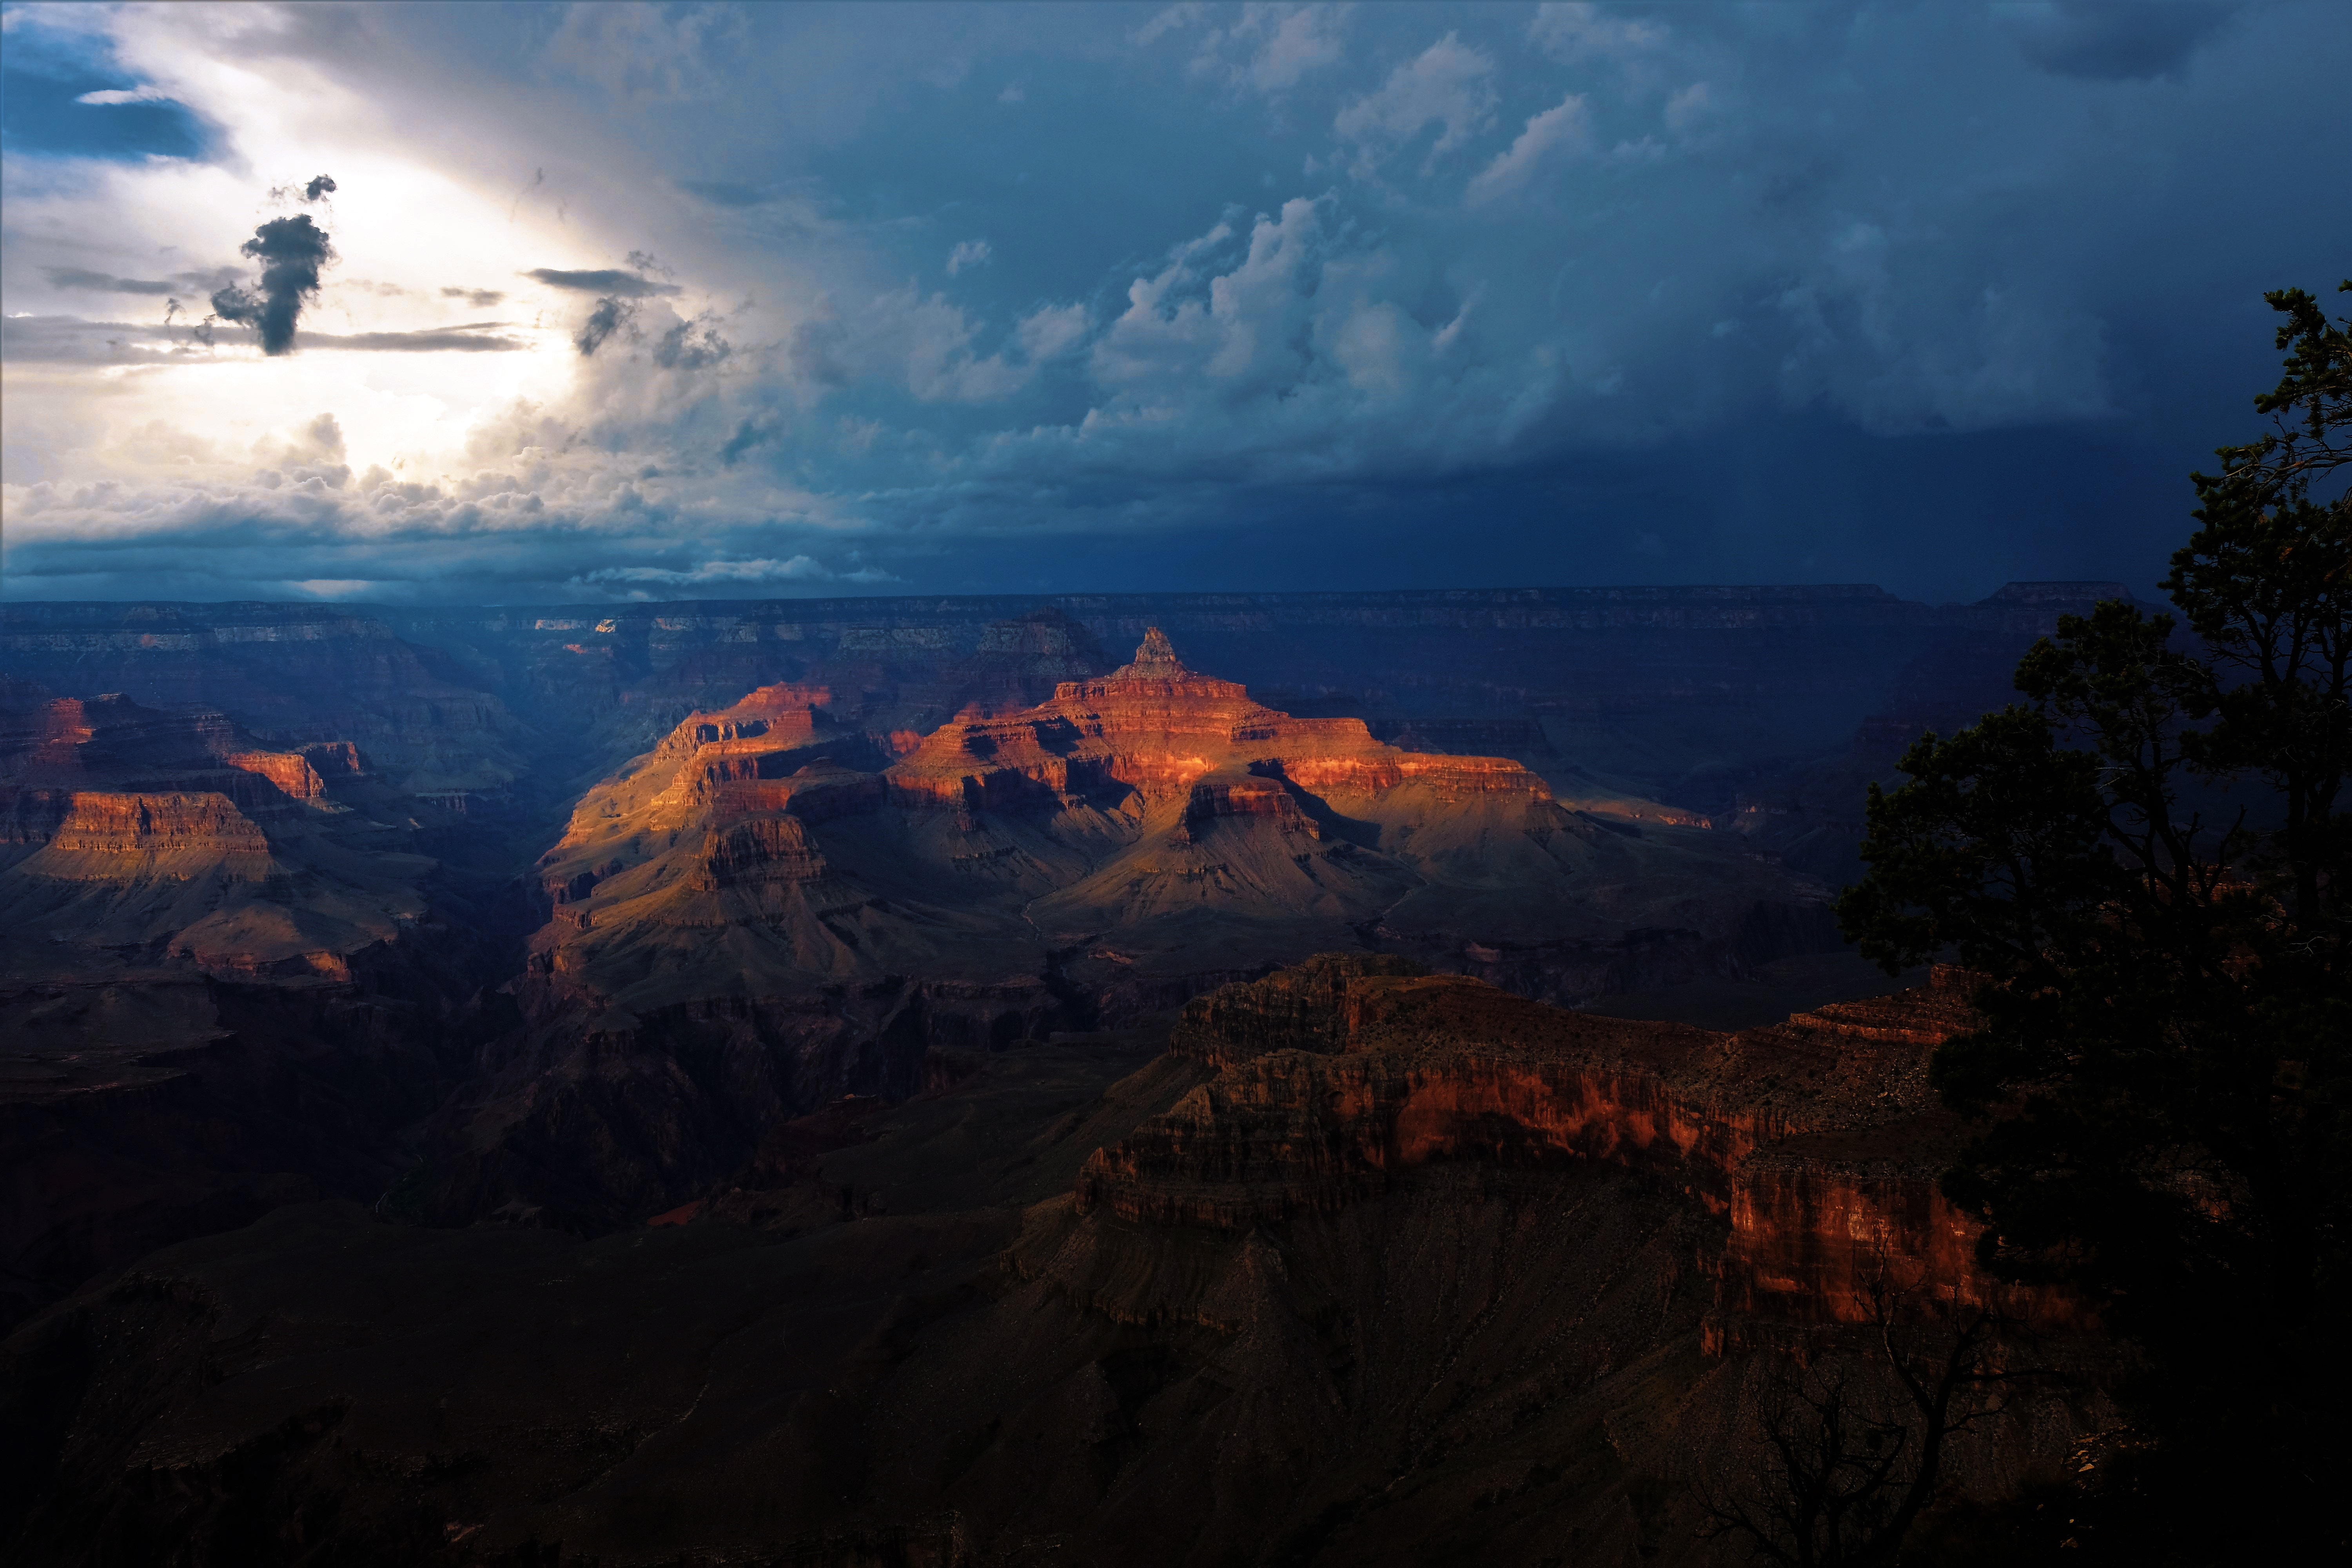 141534 download wallpaper Nature, Canyon, Grand Canyon, Clouds, Mainly Cloudy, Overcast, Night screensavers and pictures for free